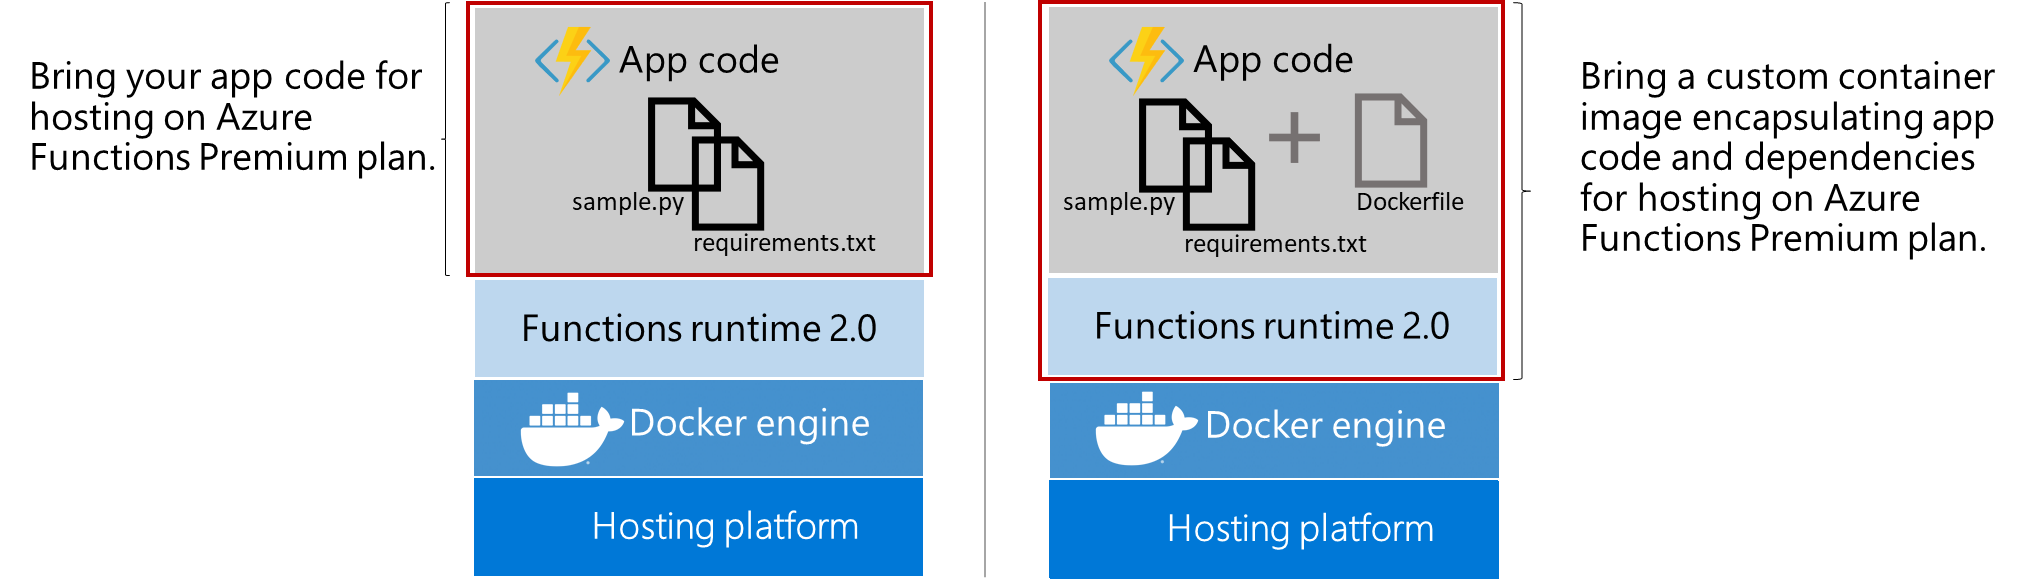 Azure Functions Premium plan hosting for code or containers